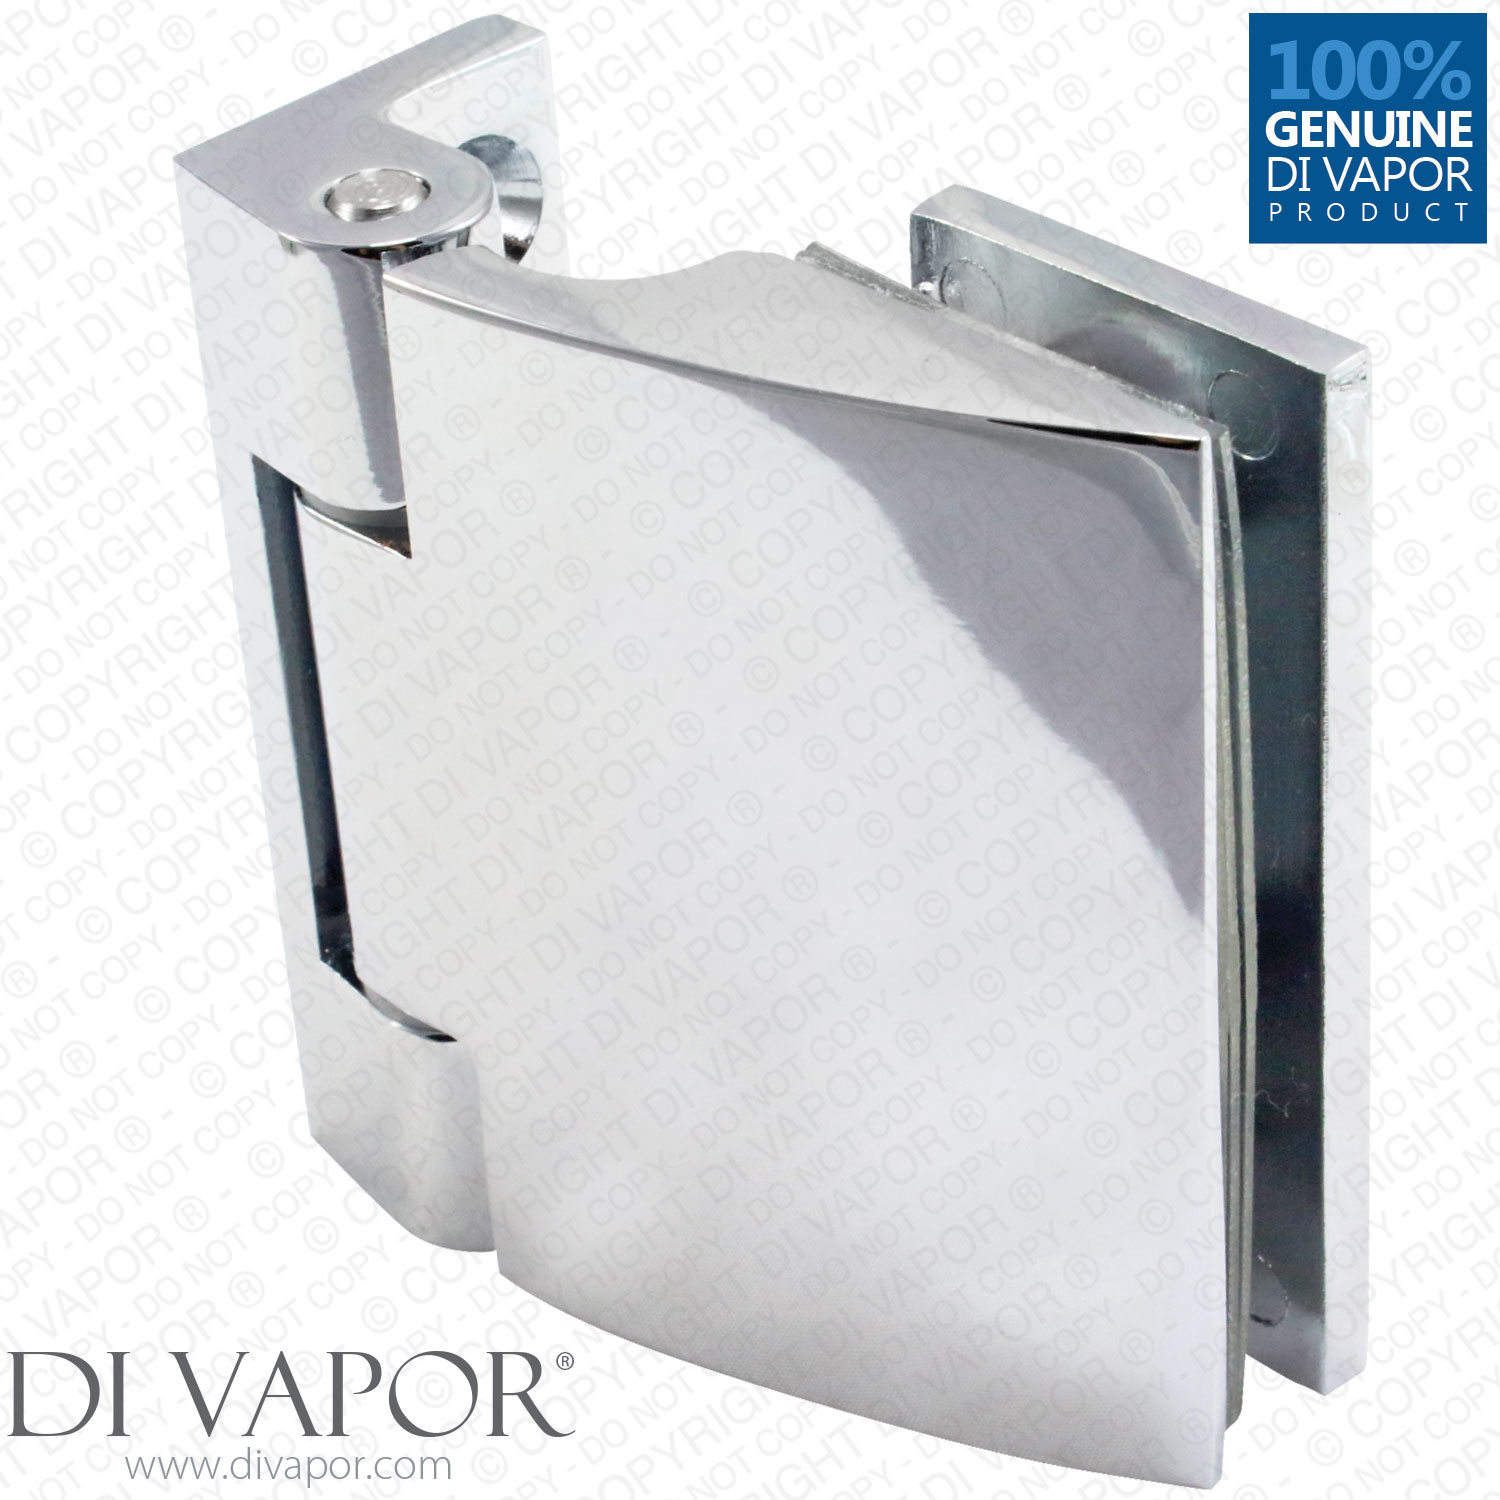 180 Degree Wall Mounted Shower Door Glass Hinge | Chrome Plated ...